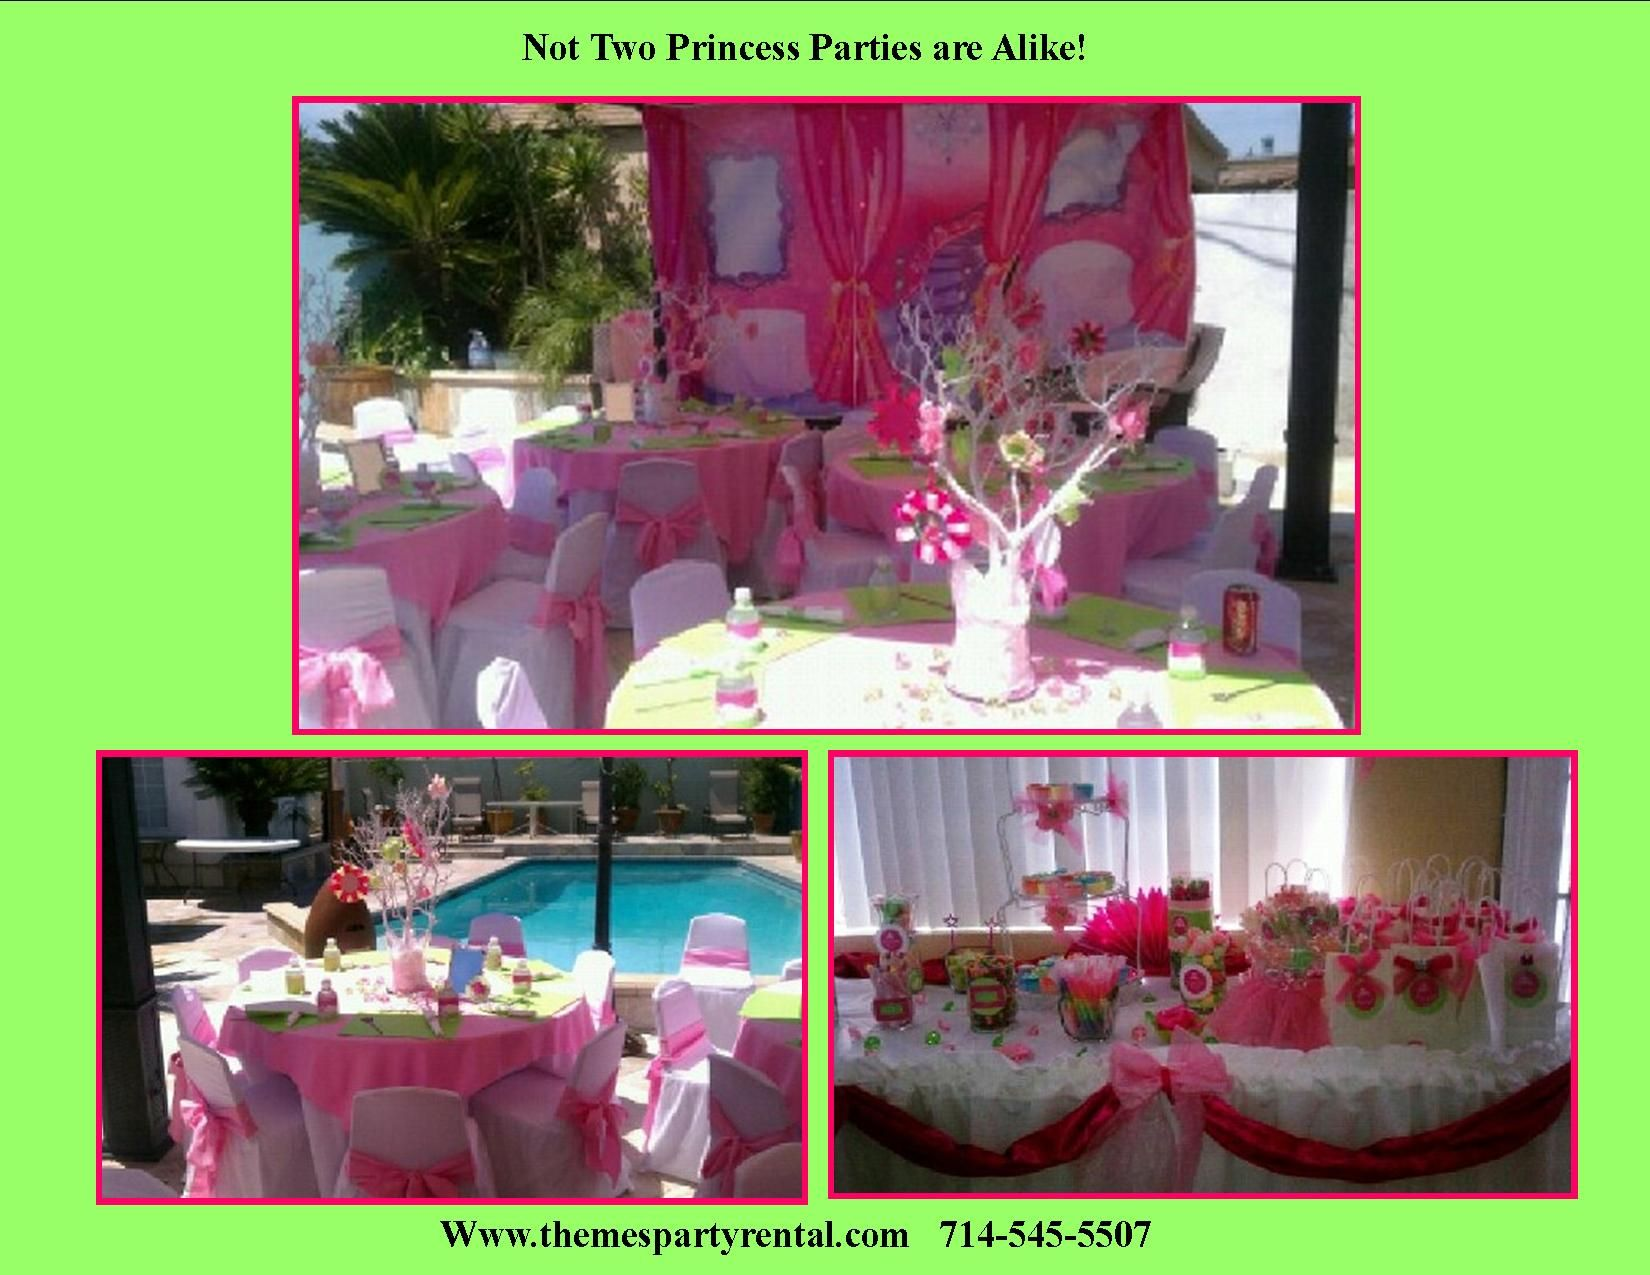 Princess Party Ideas Decorations Centerpieces Birthday Kids Sized Tables And Chairs With Custom Chair